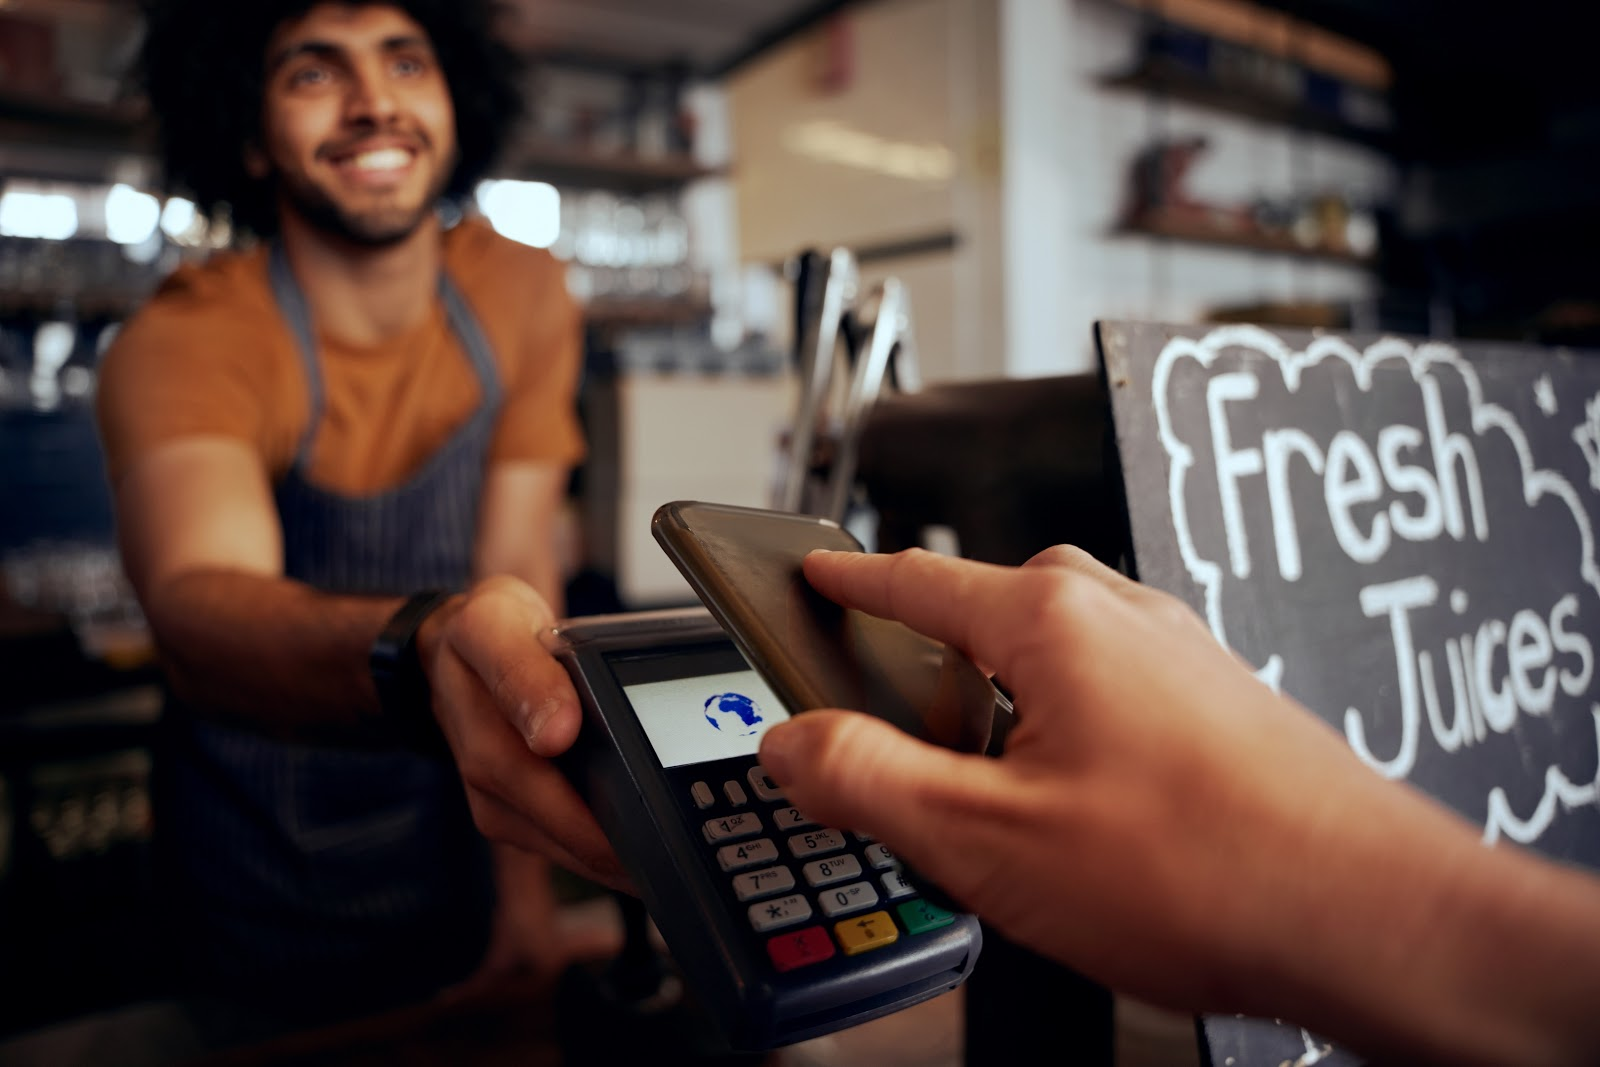 A person makes a contactless payment in a cafe